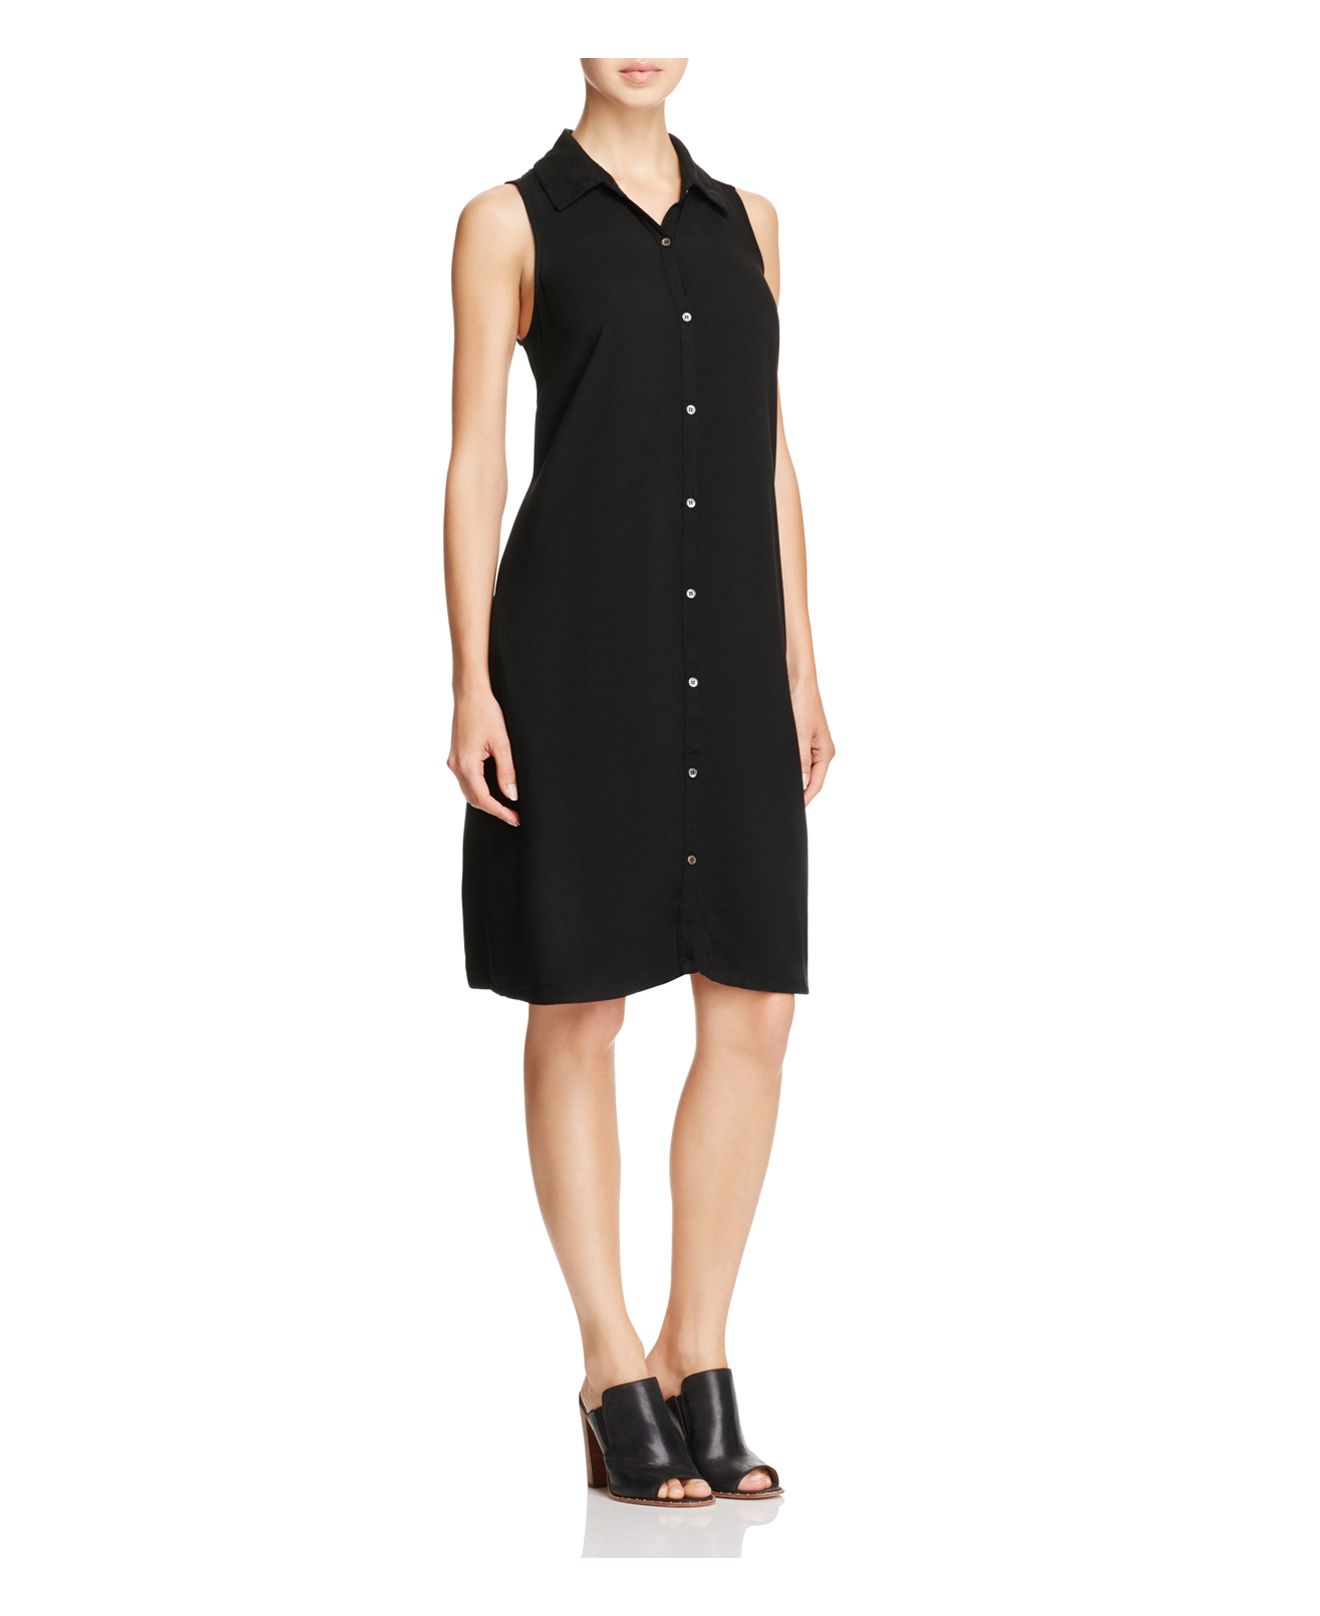 Lyst - Three dots Sleeveless Shirt Dress in Black